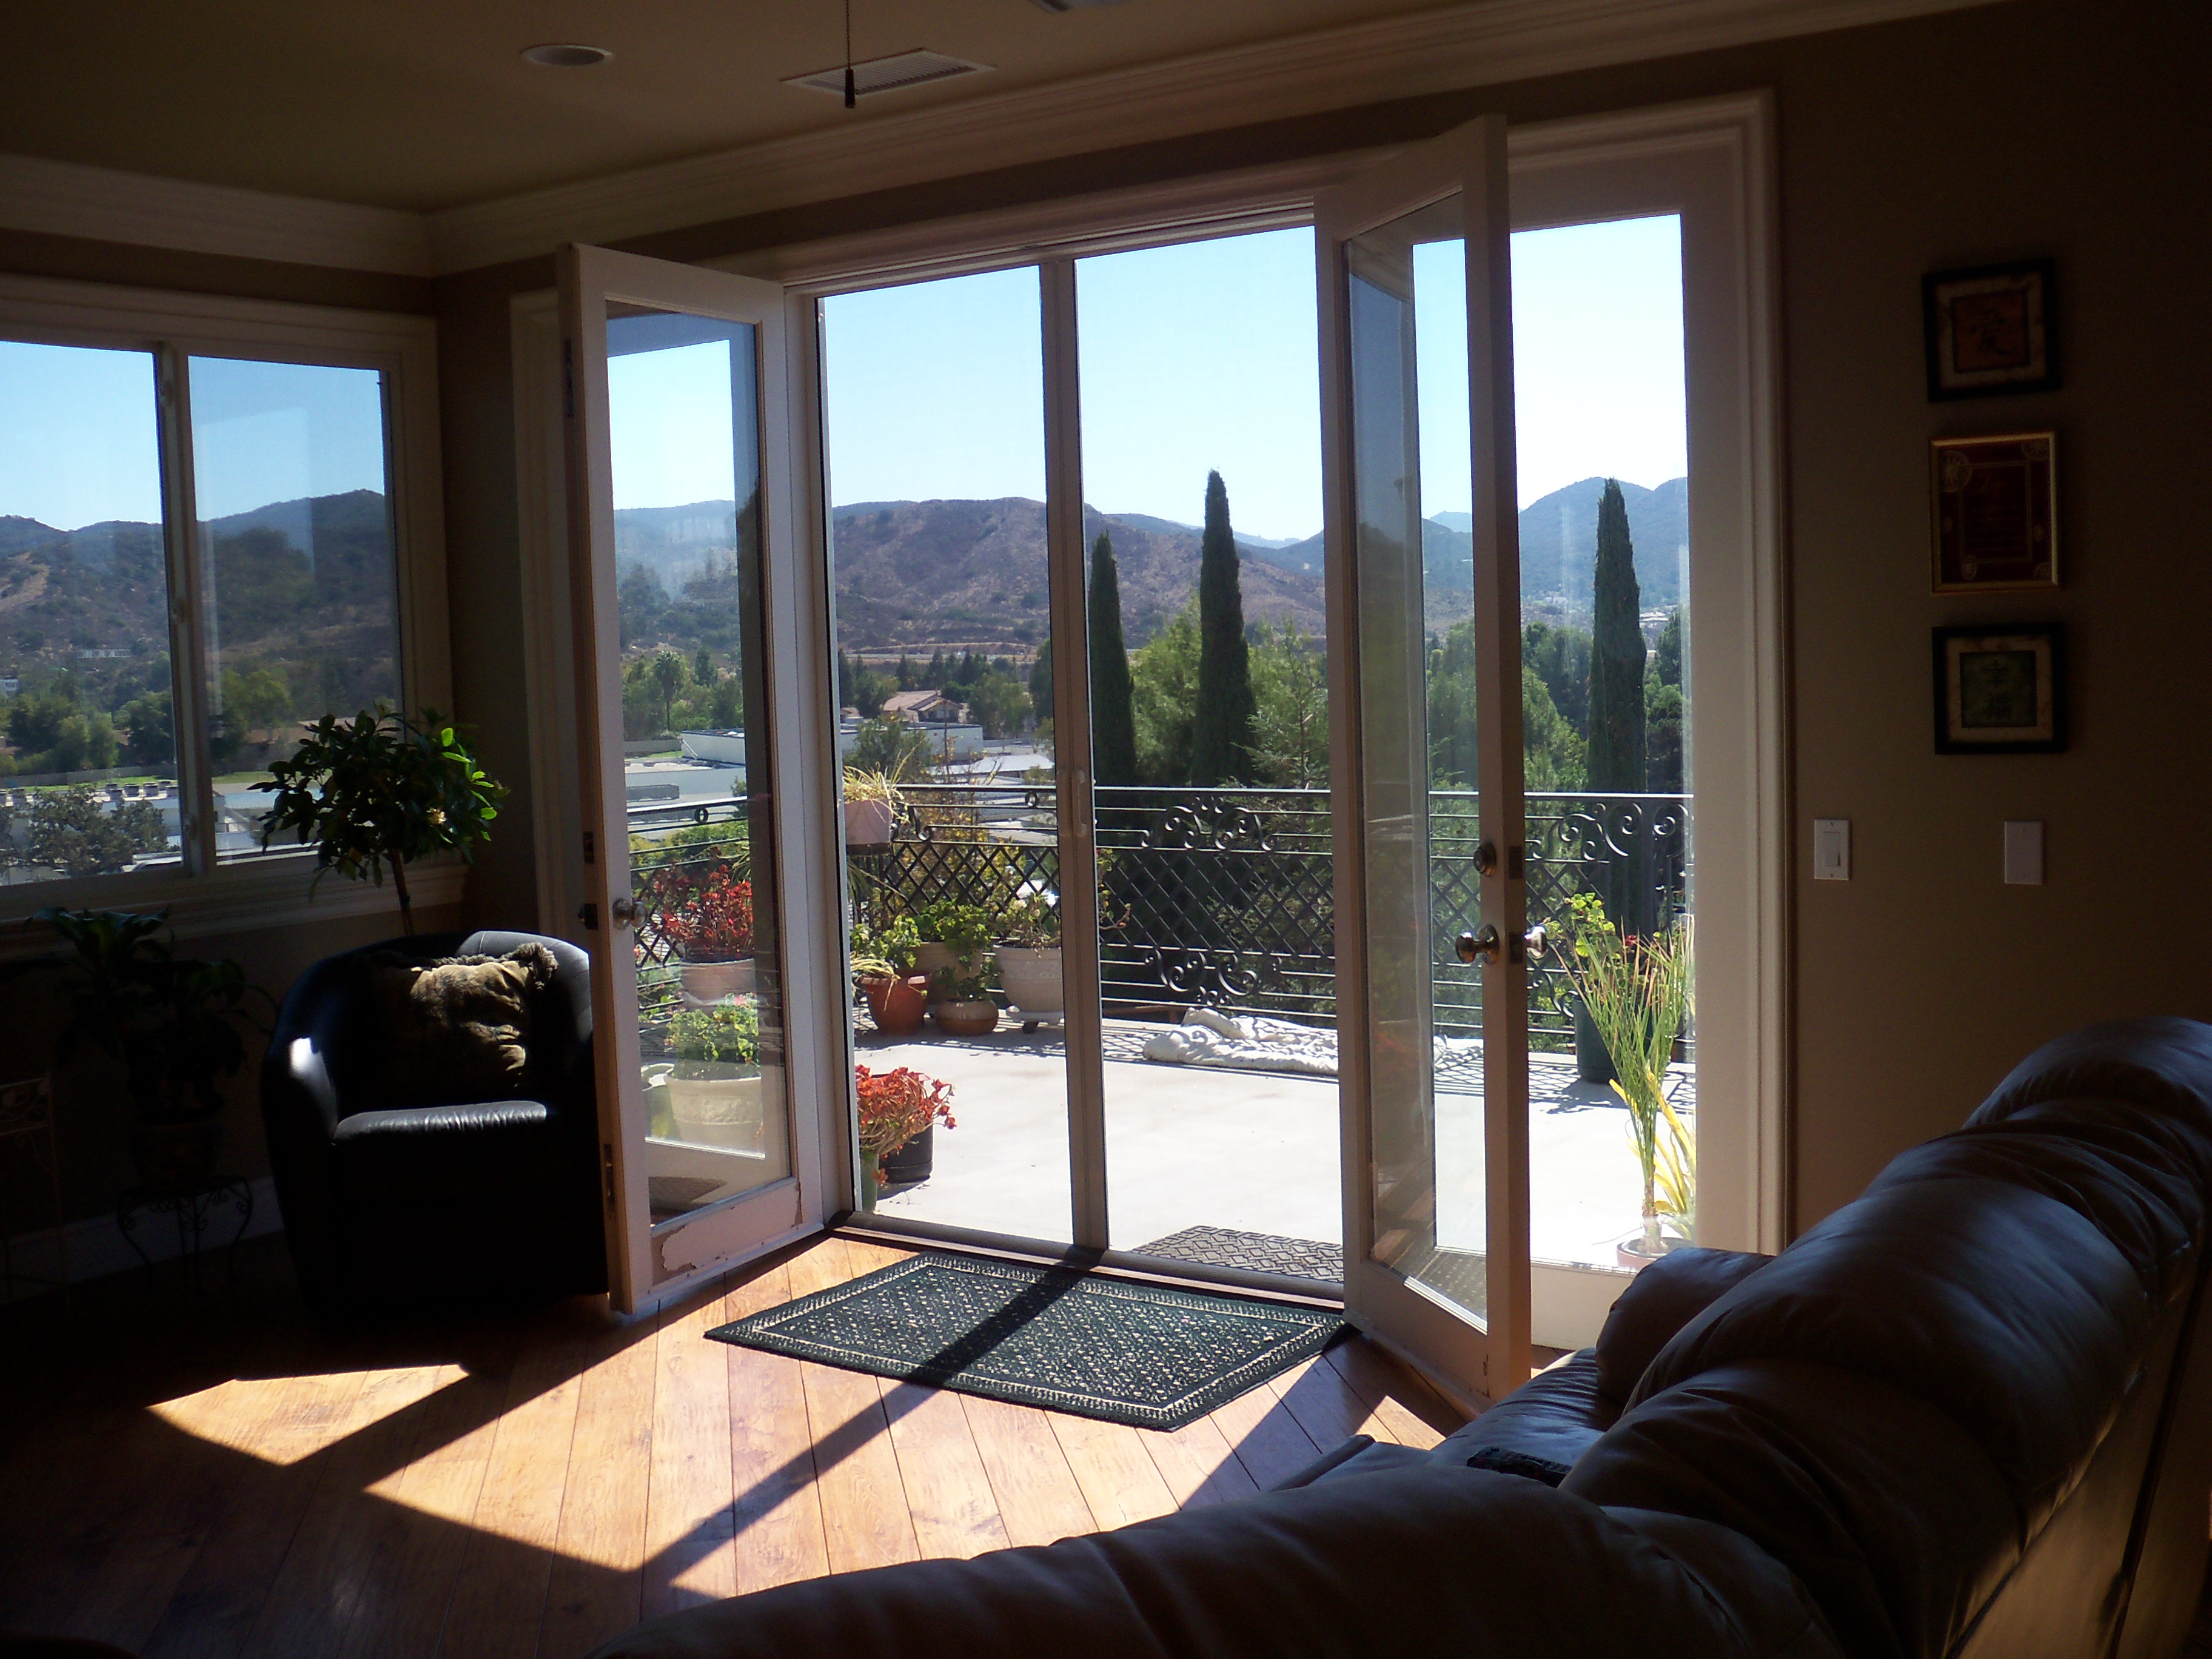 Doors With Screen: Window Screens And Screen Doors In San Fernando Valley